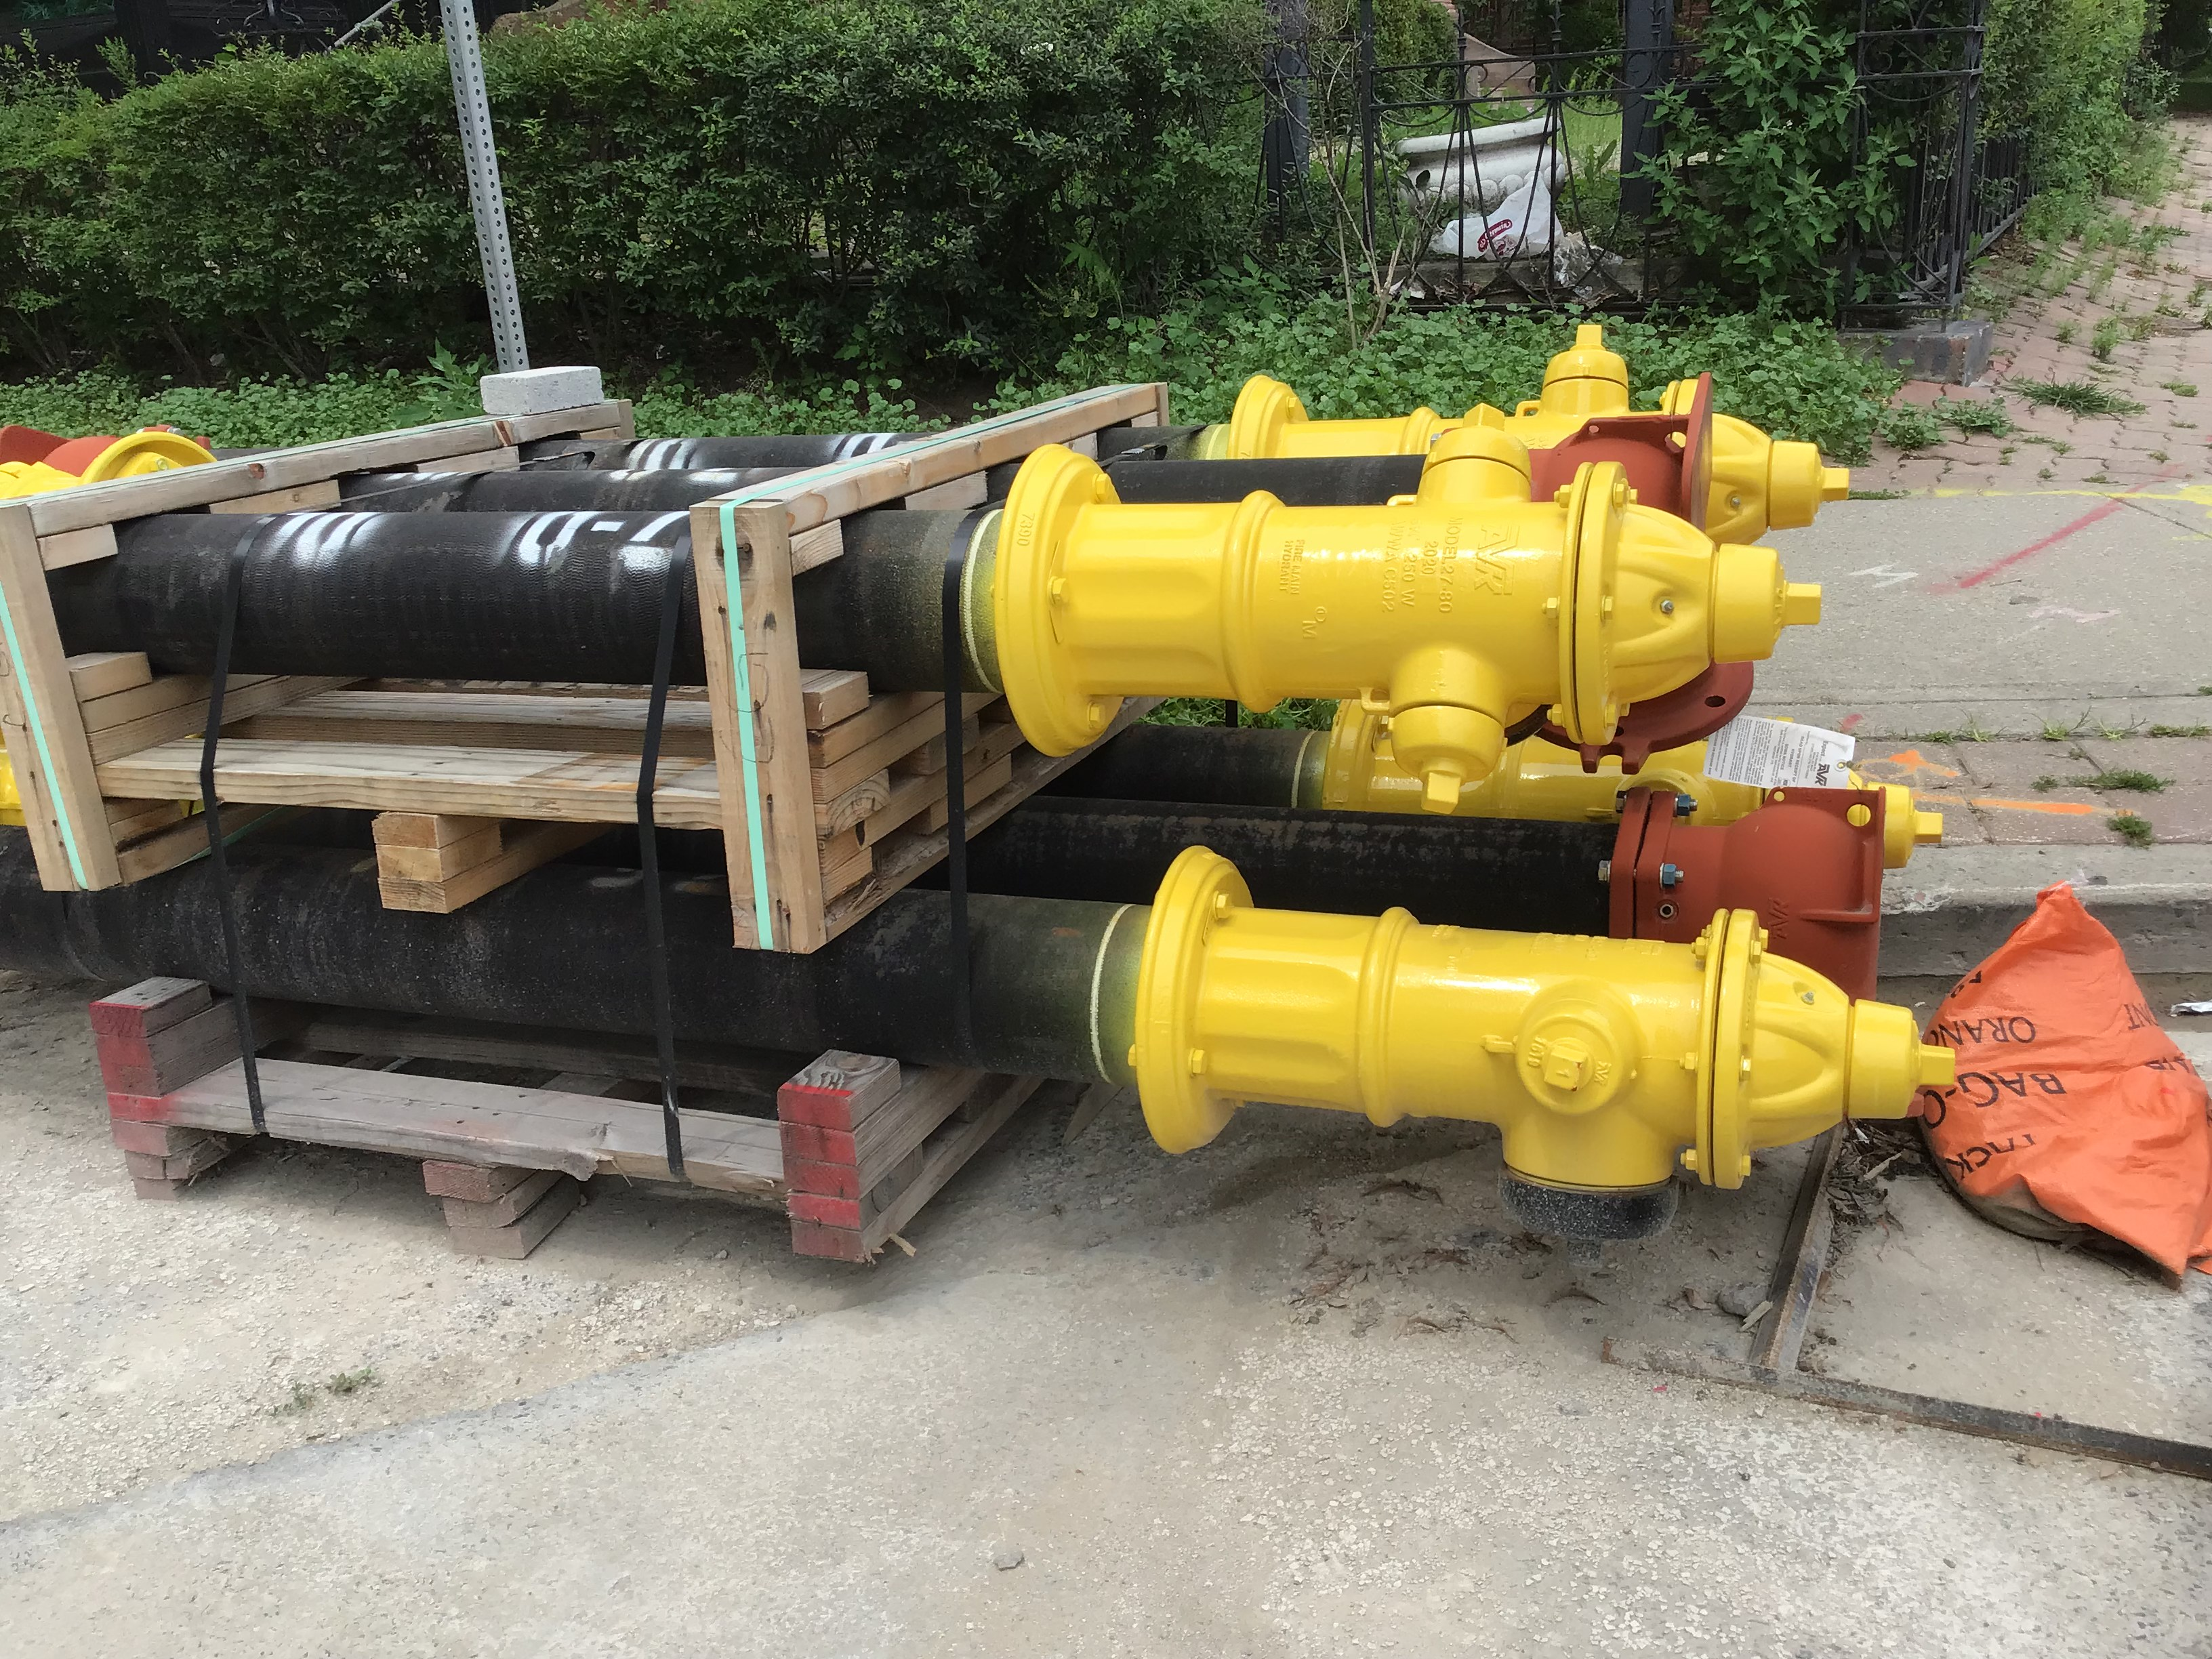 22_Andrew_McPhail_firehydrant